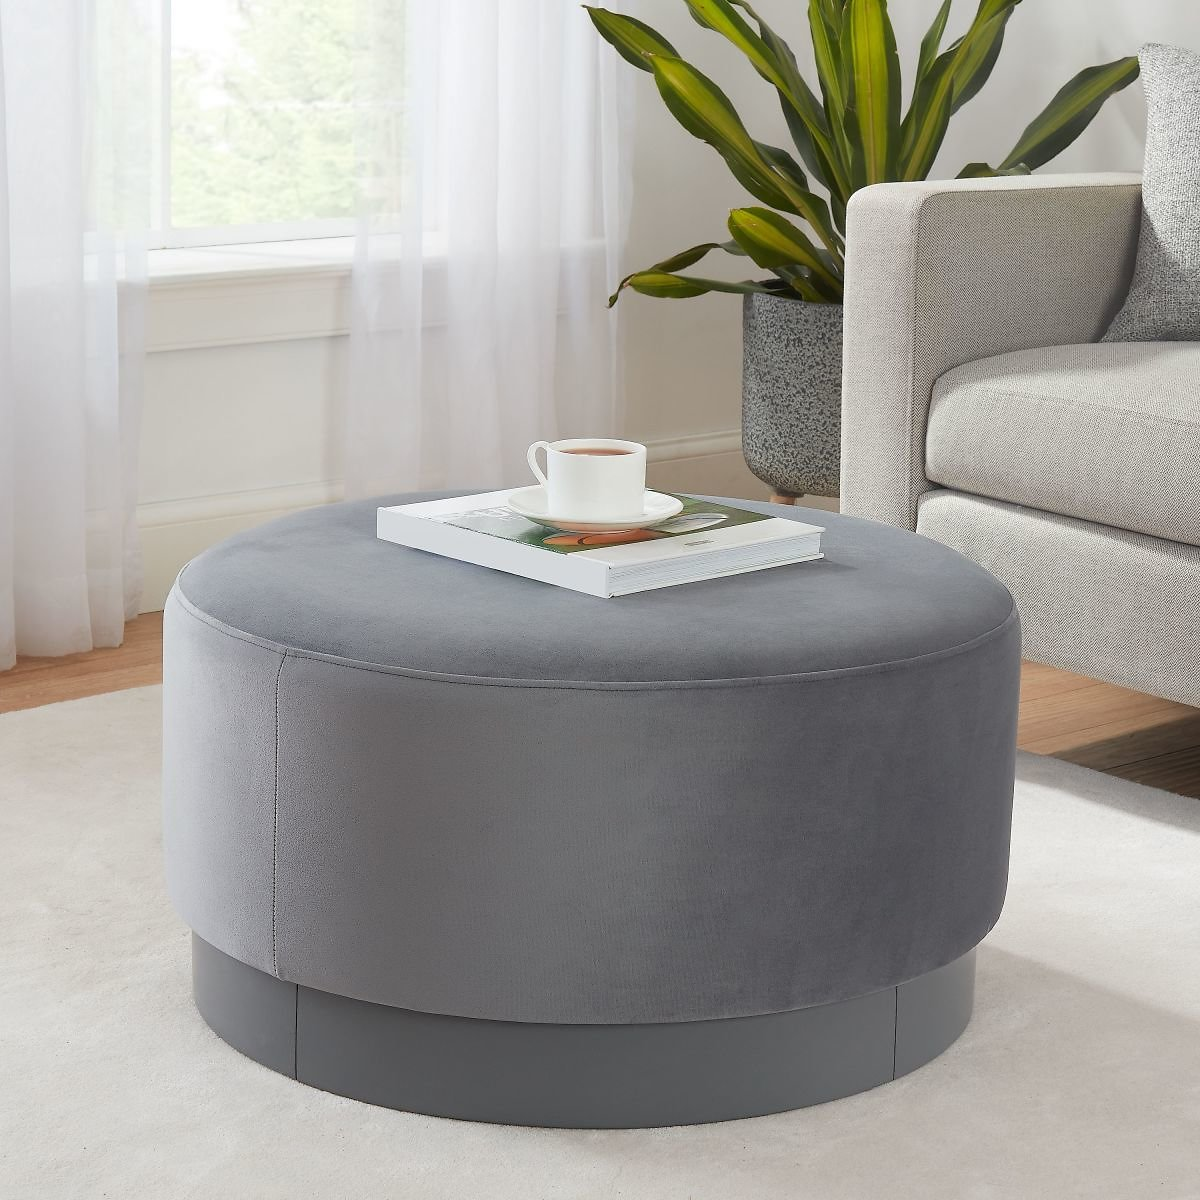 Better Homes & Gardens Addison Large Round Ottoman, Multiple Colors